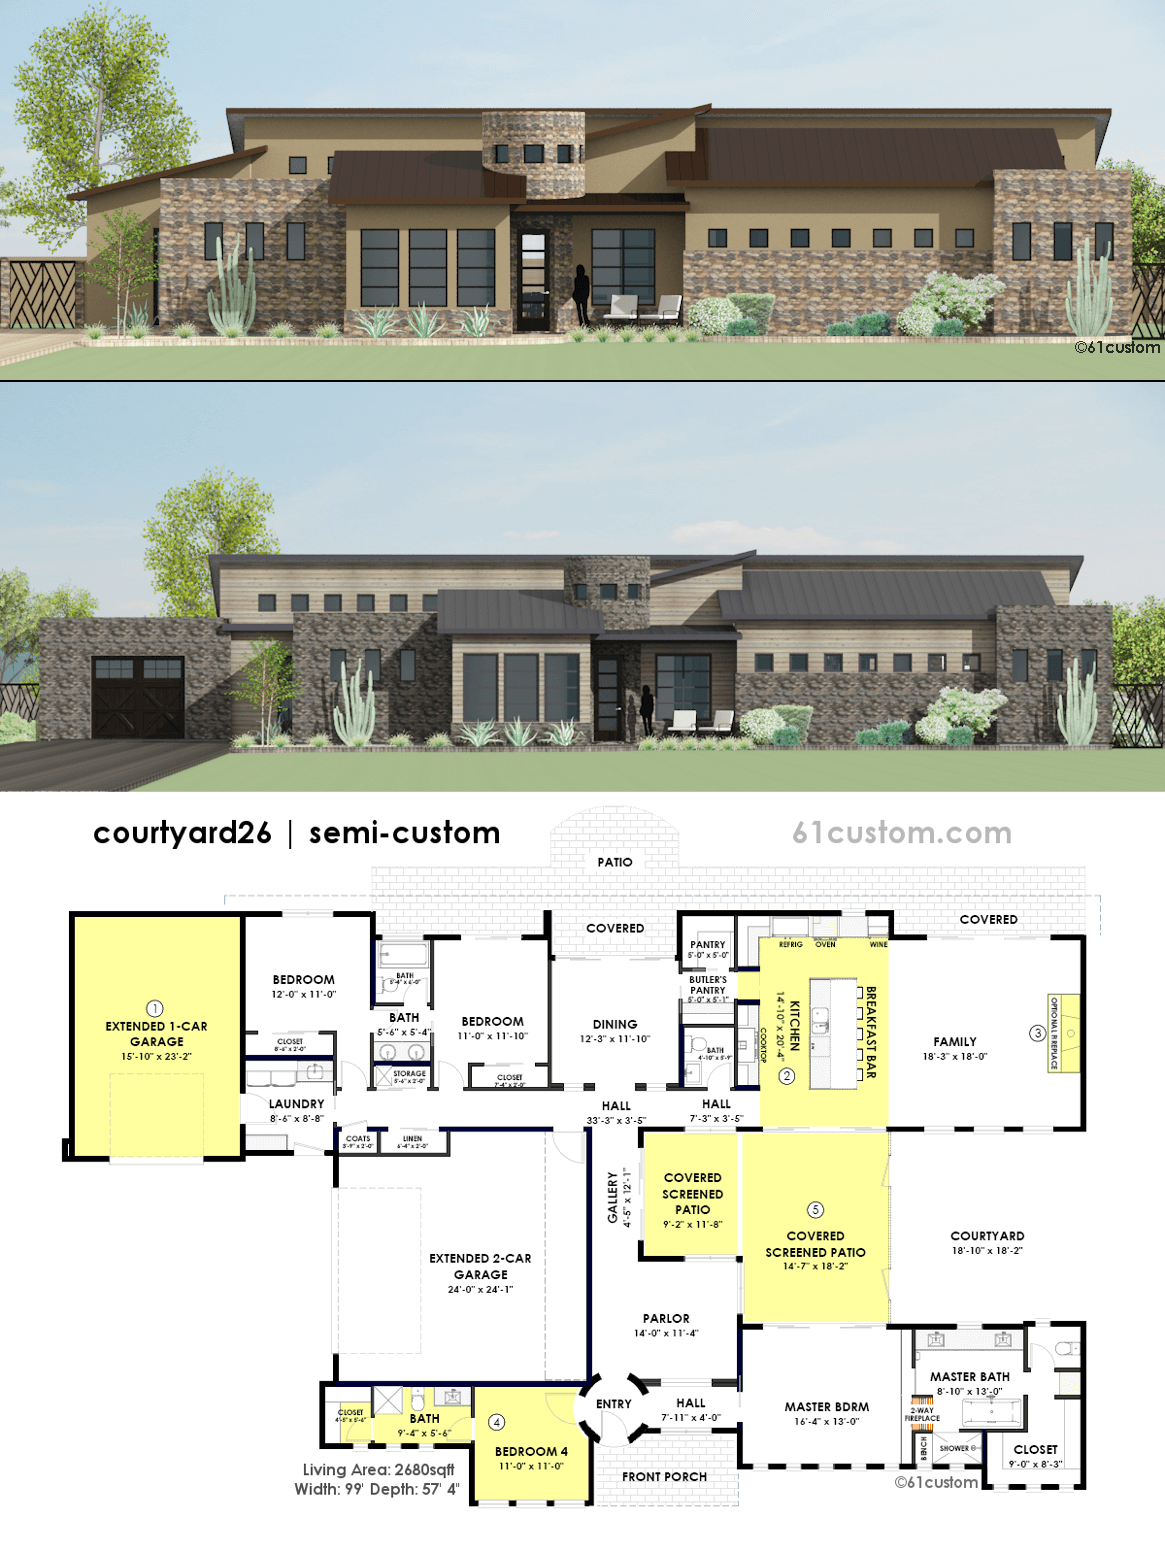 Contemporary side courtyard house plan 61custom for Contemporary floor plans for new homes